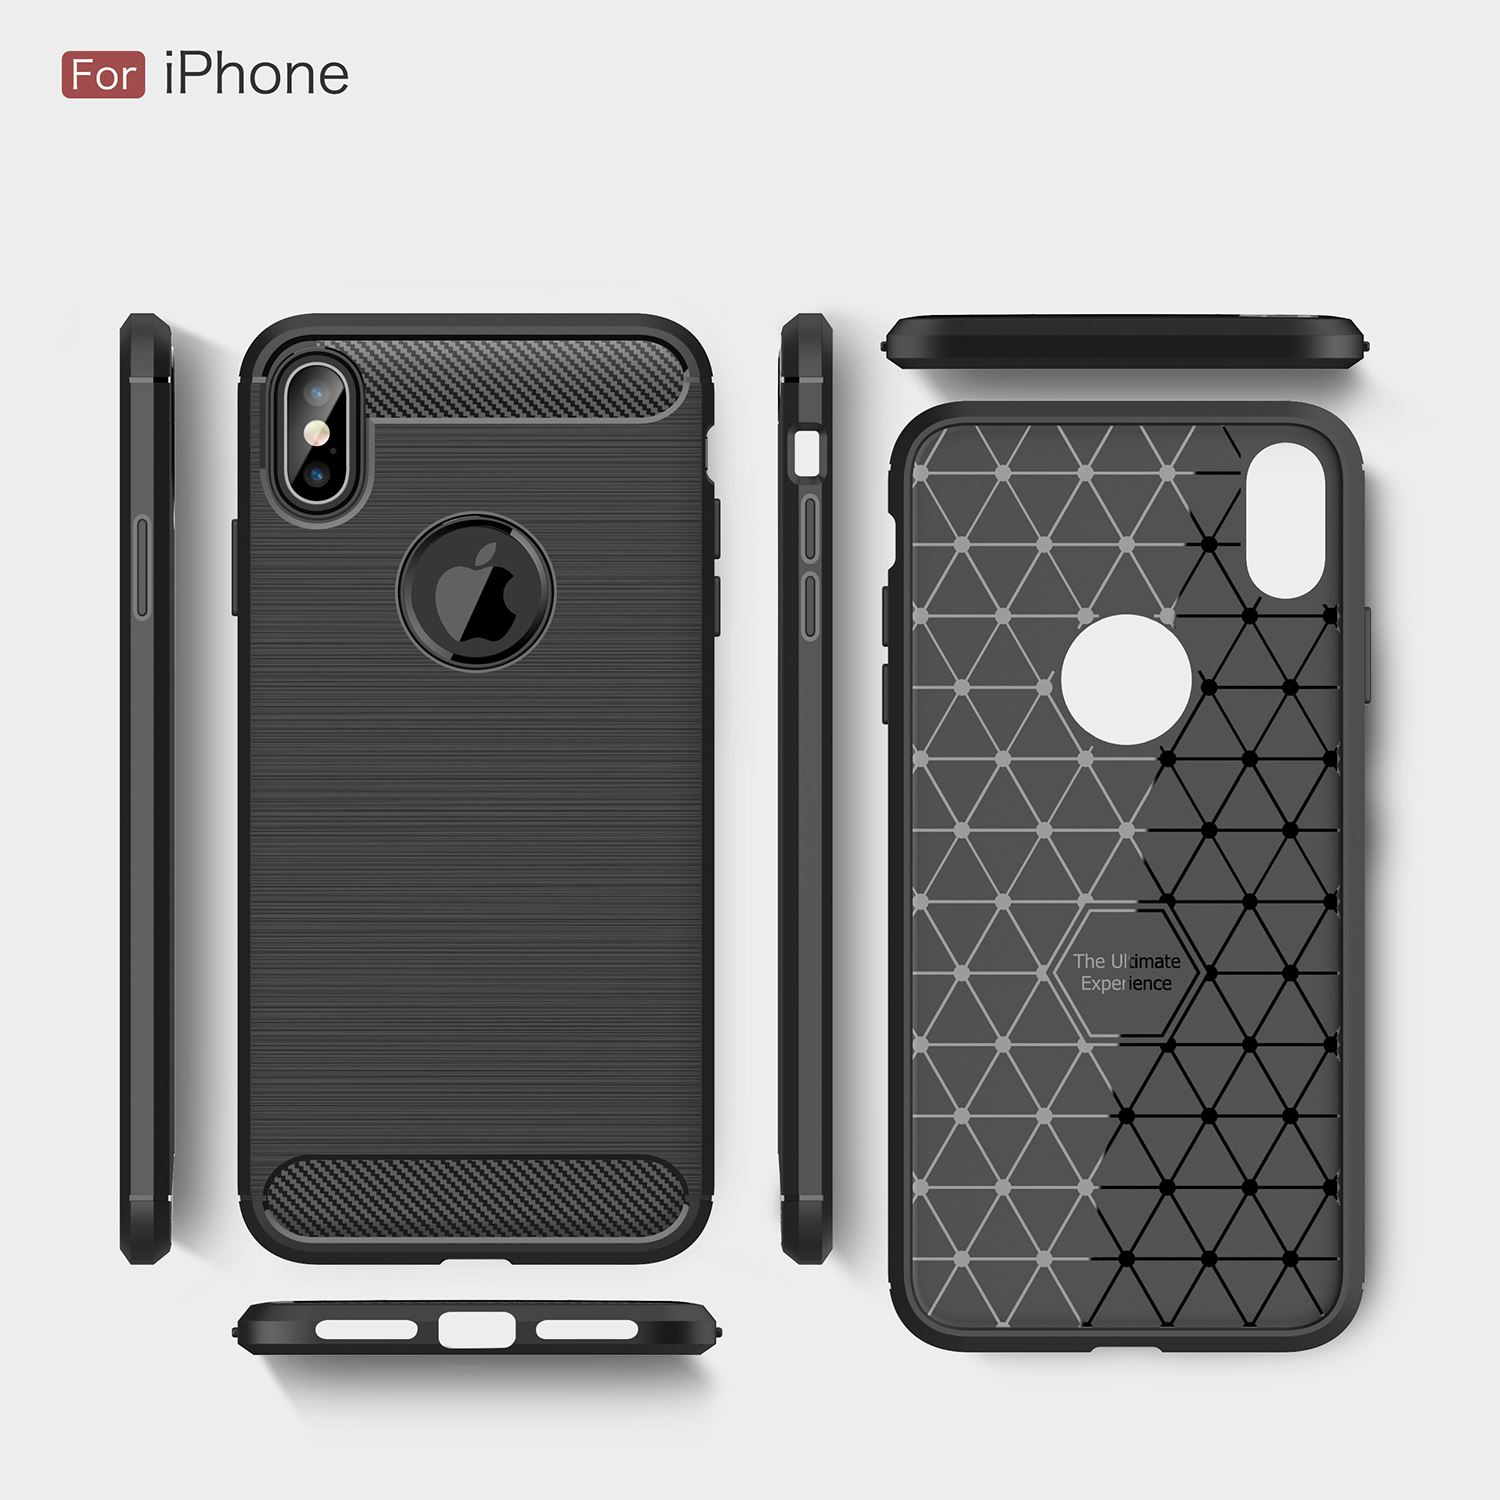 miniature 18 - For Apple iPhone XR Xs Max X 8 7 Plus 6 5 Se 2020 Case Cover New Phone Proof